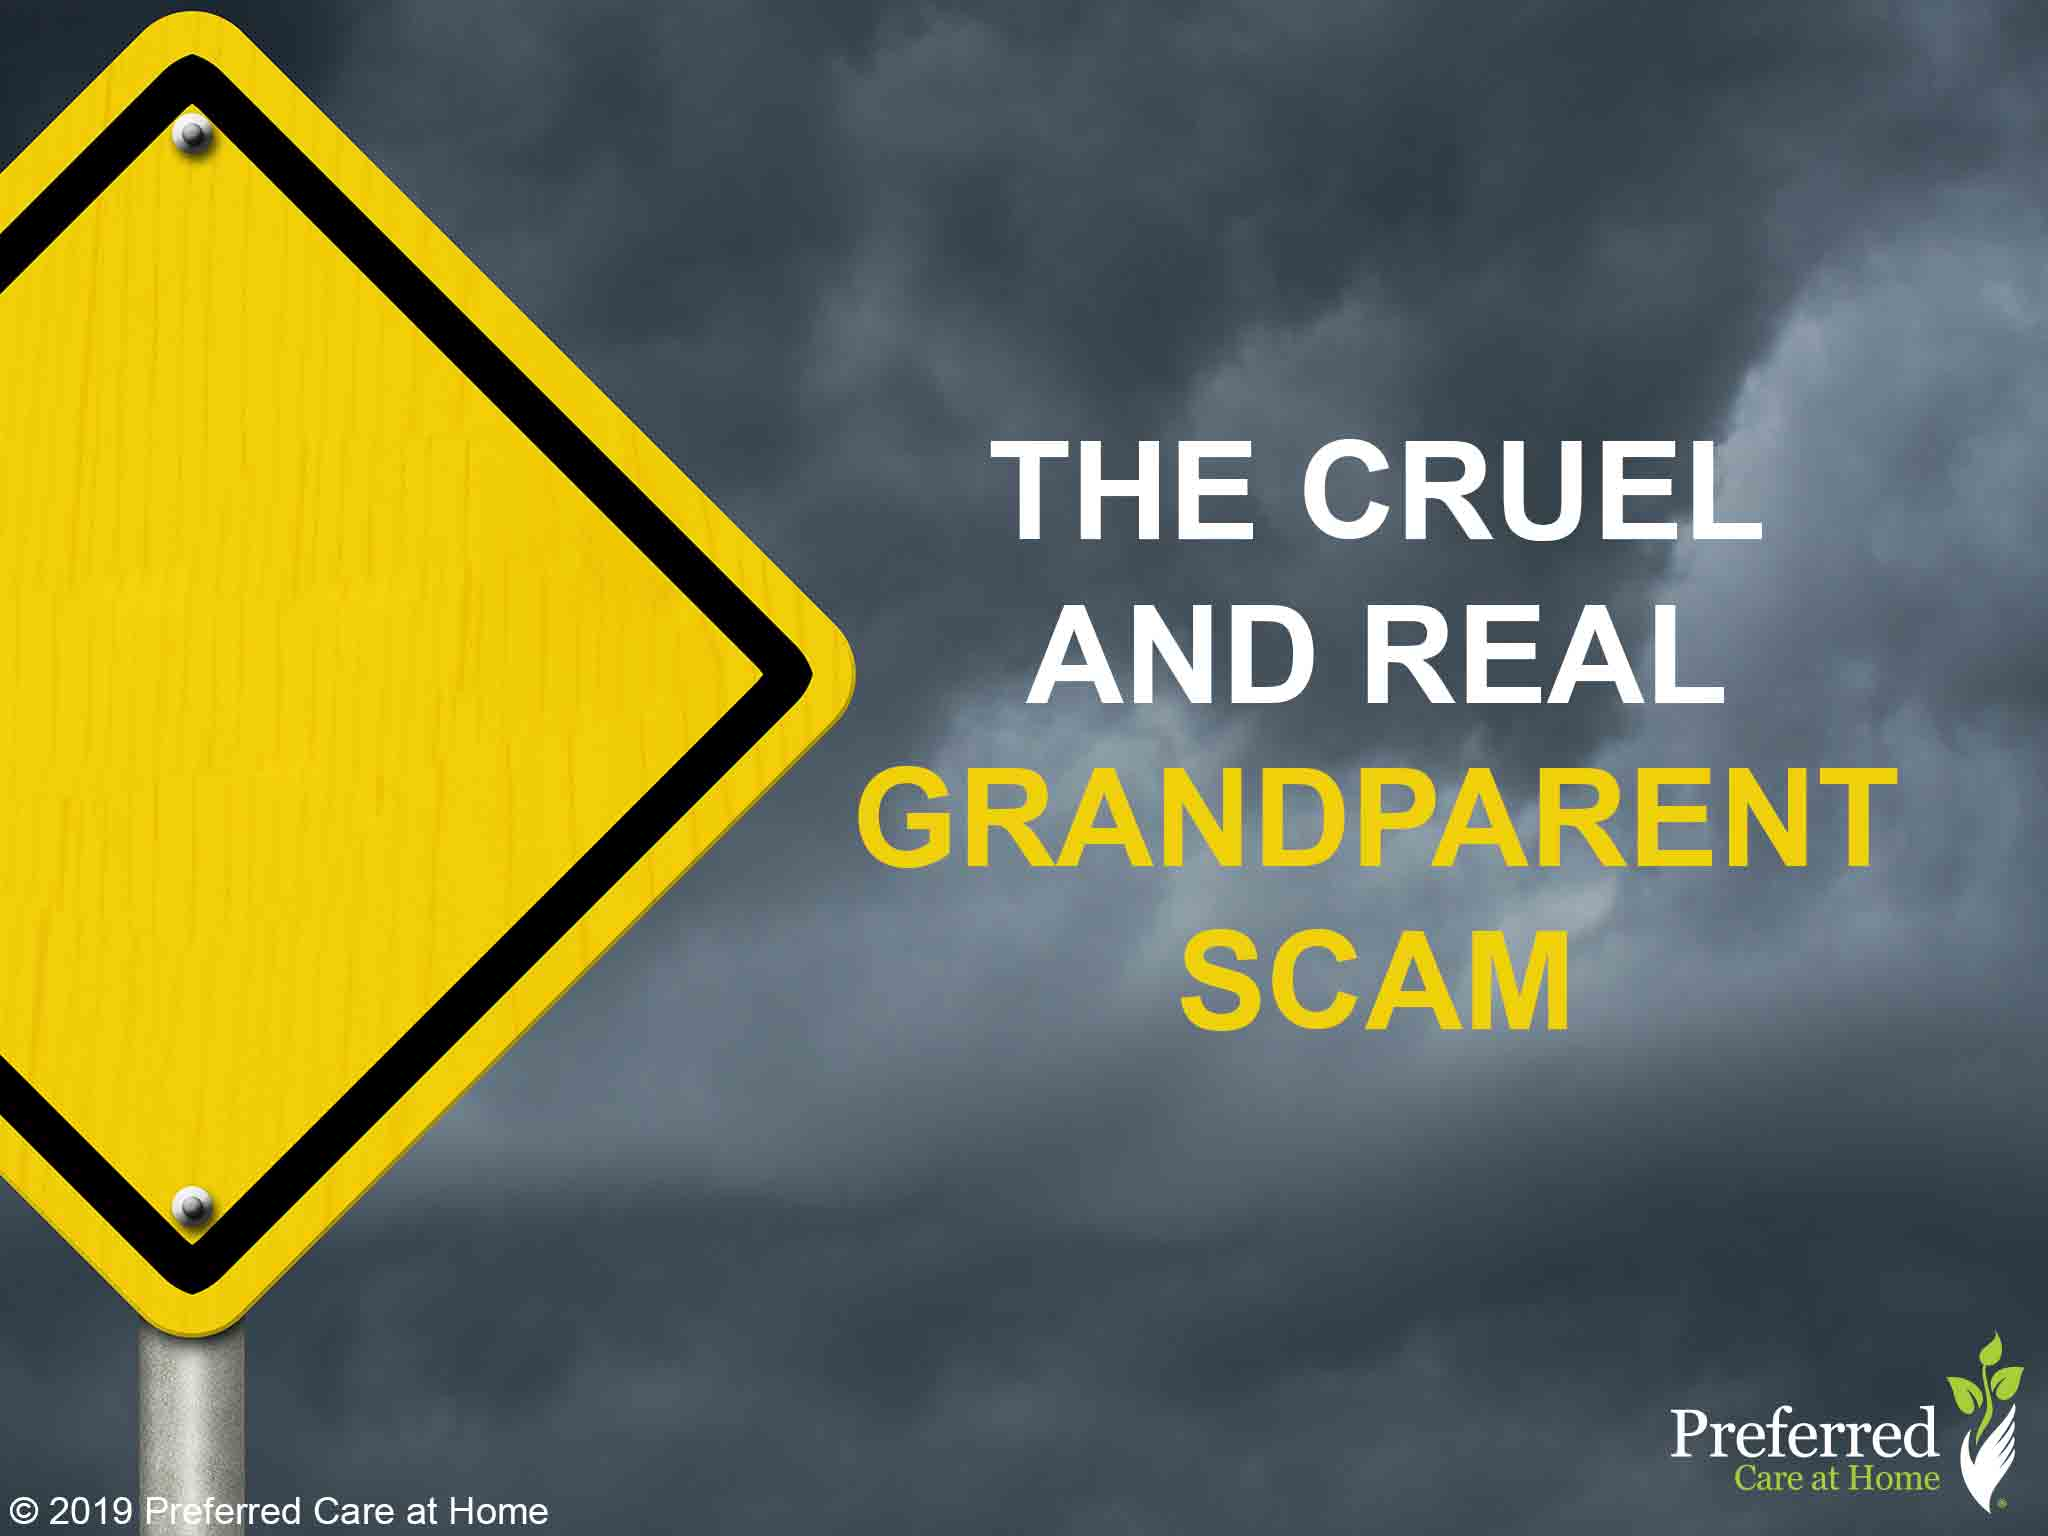 Have you heard about the Grandparent Scam?